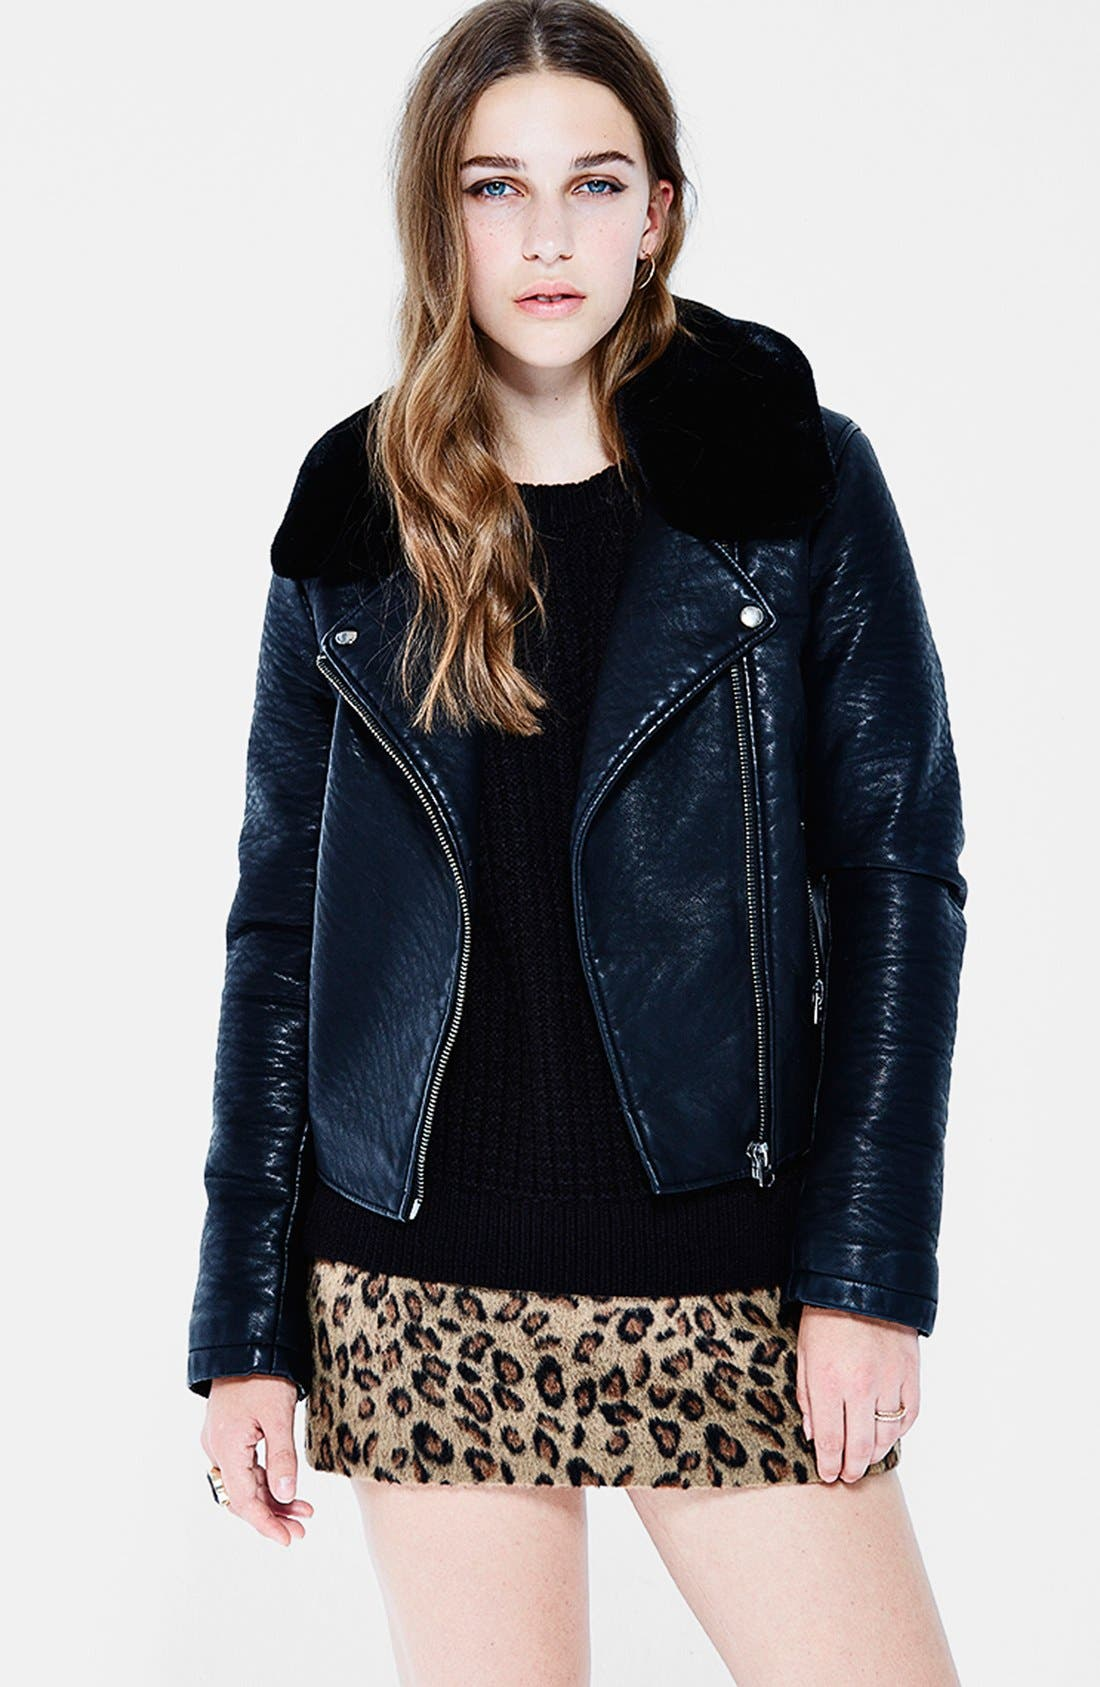 Topshop Faux Leather Jacket with Removable Faux Fur | Nordstrom